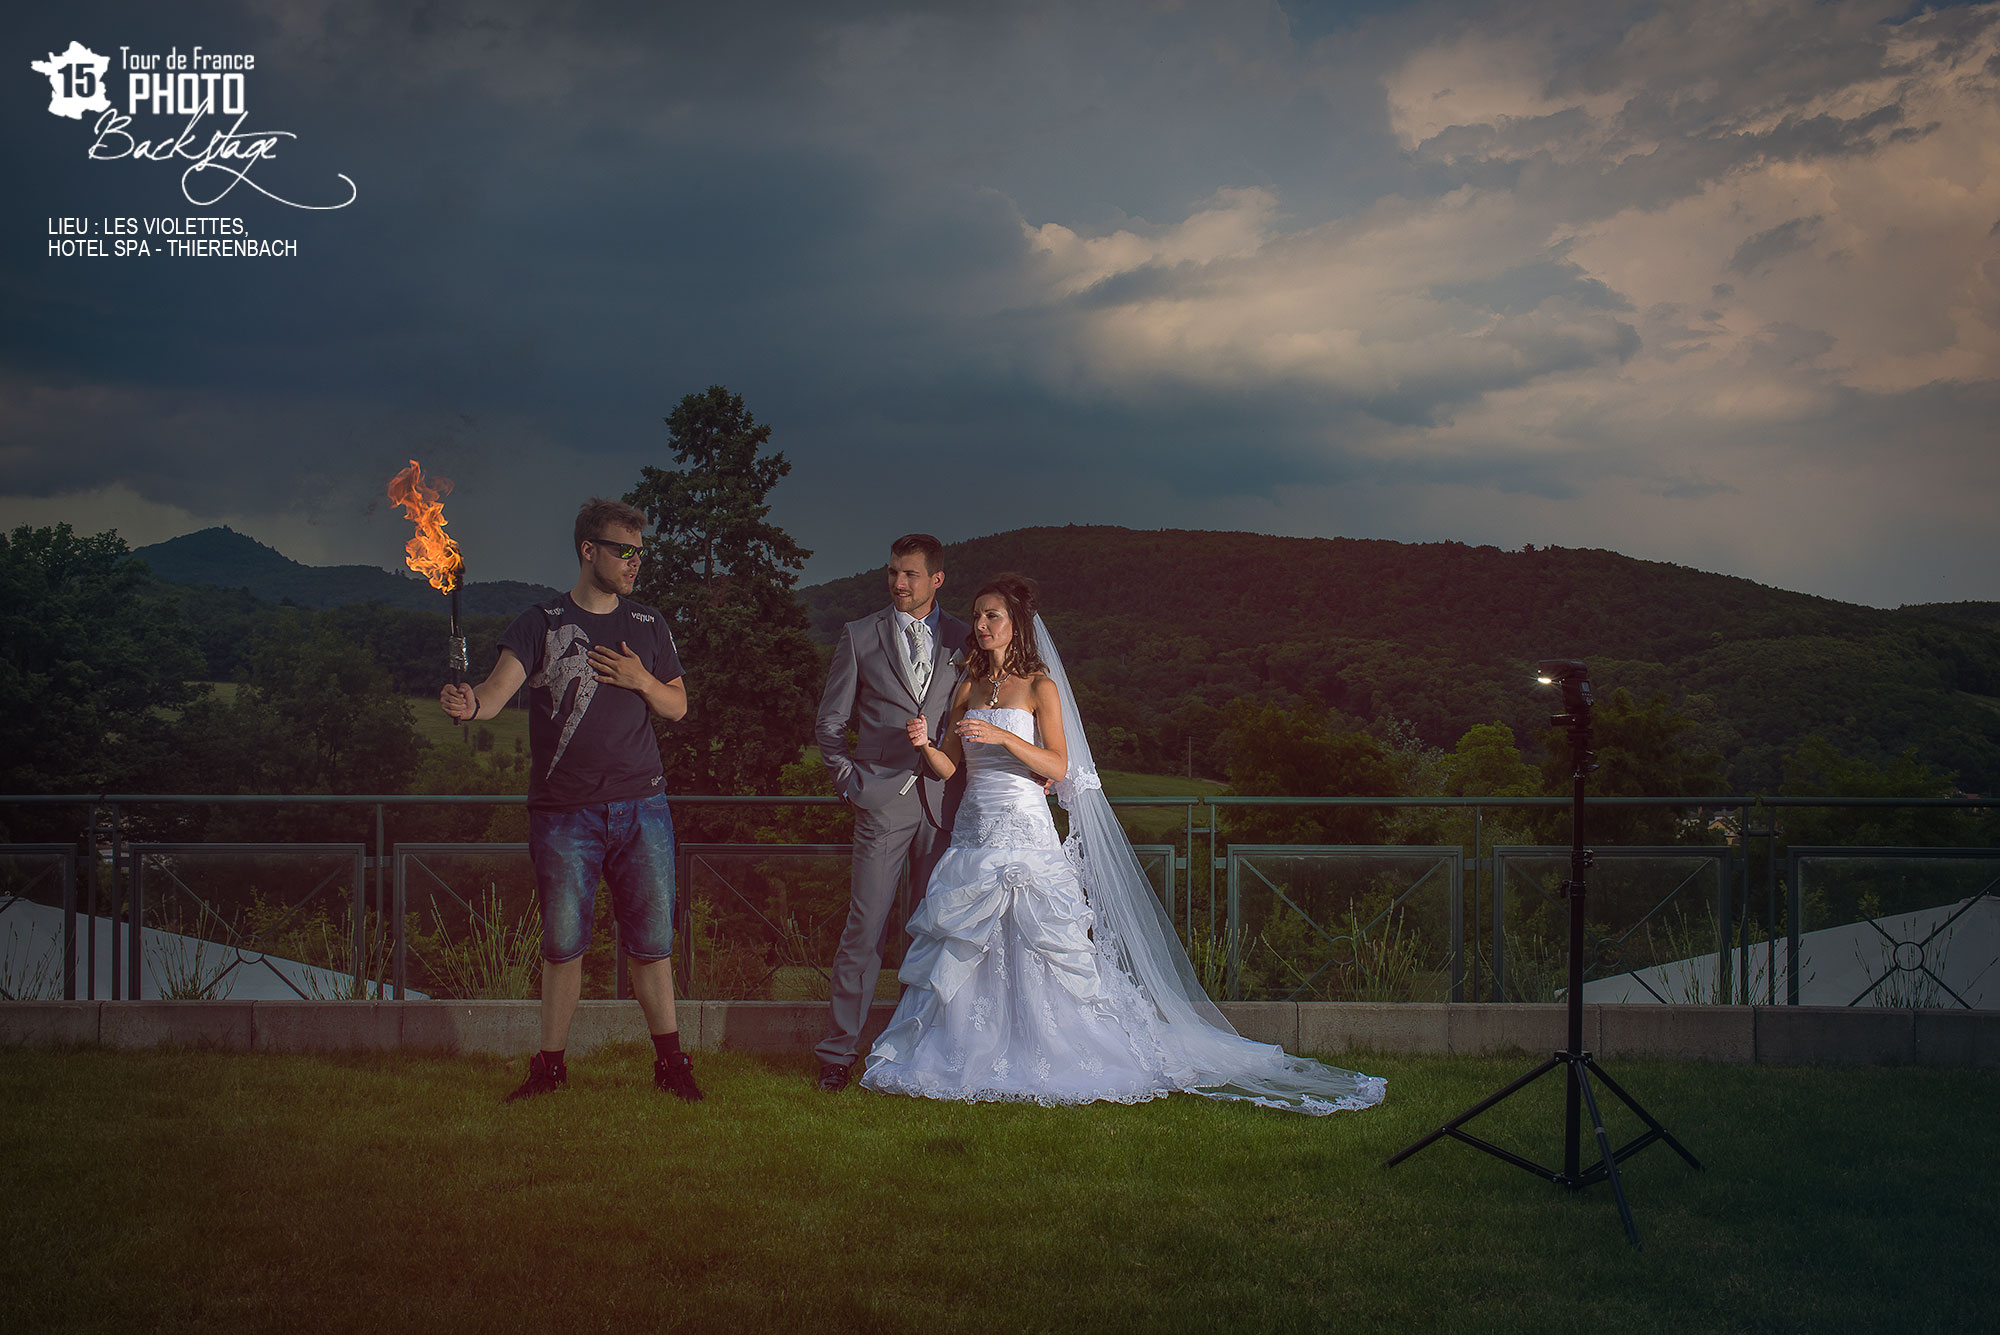 Backstage photo de feu mariage